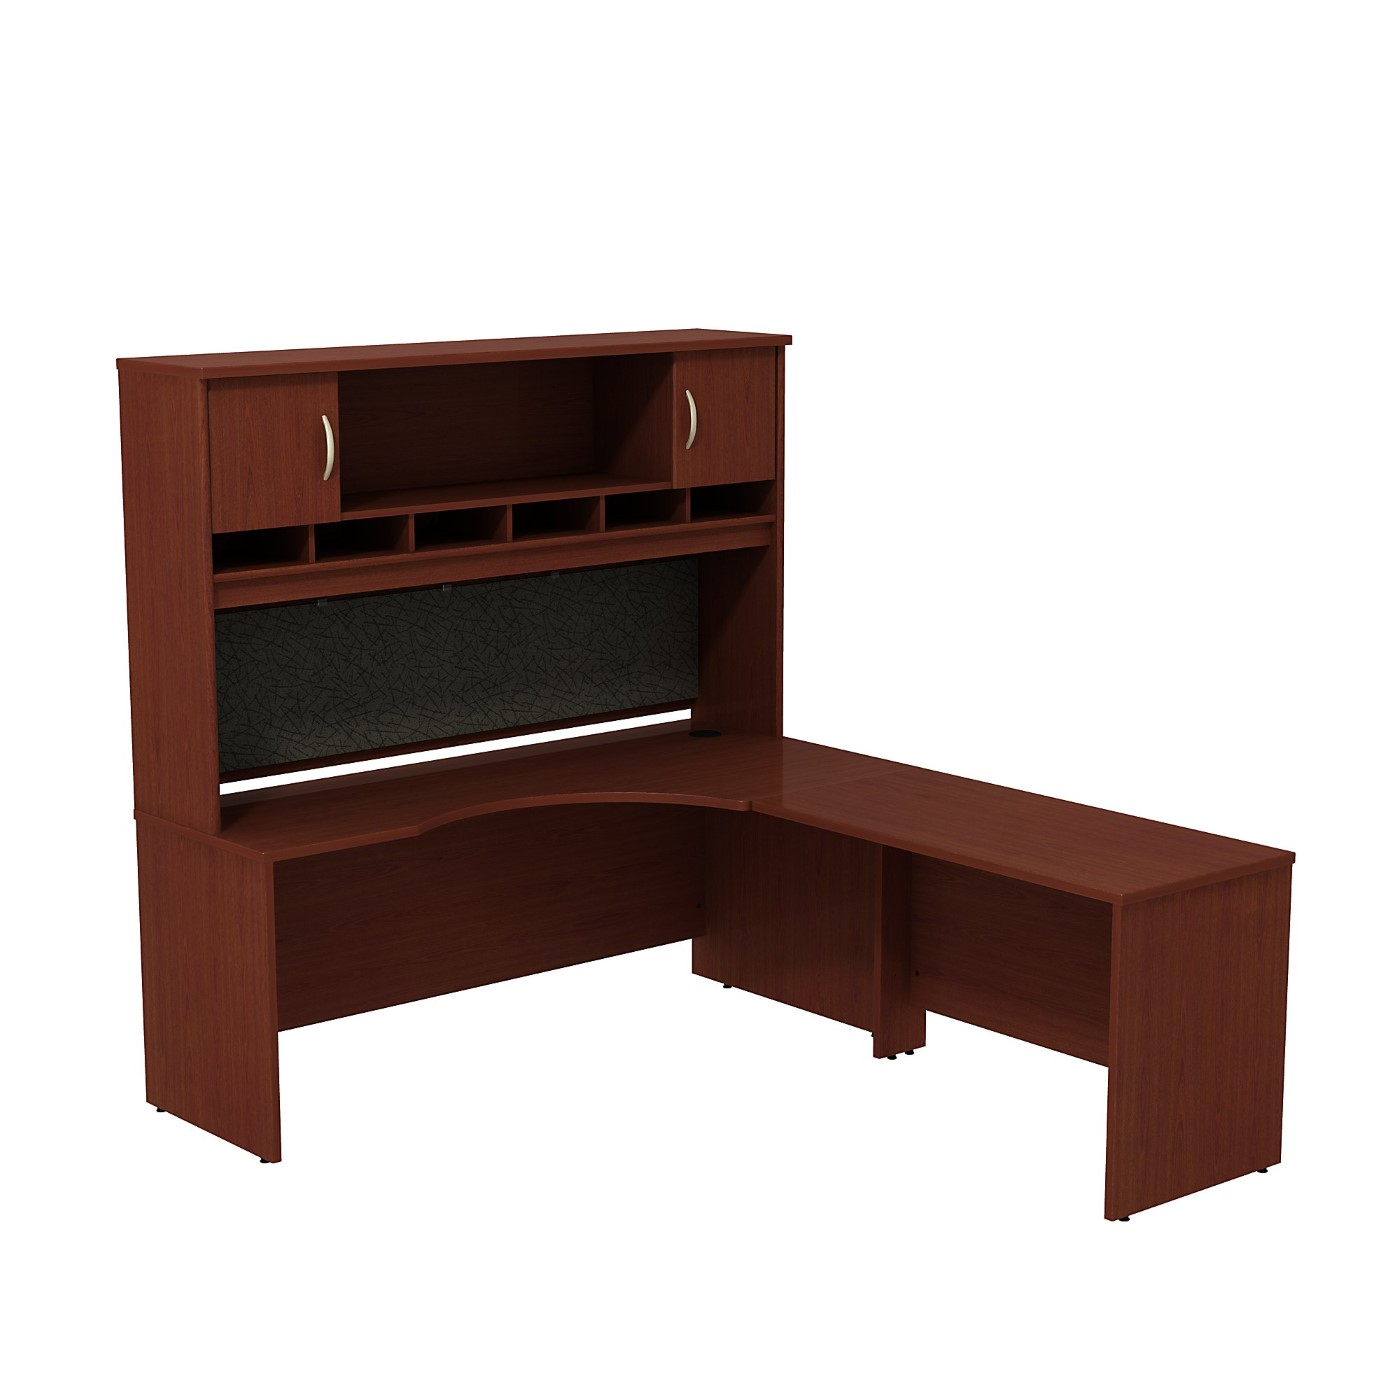 BUSH BUSINESS FURNITURE SERIES C RIGHT HANDED CORNER L SHAPED DESK WITH HUTCH. FREE SHIPPING SALE DEDUCT 10% MORE ENTER '10percent' IN COUPON CODE BOX WHILE CHECKING OUT.